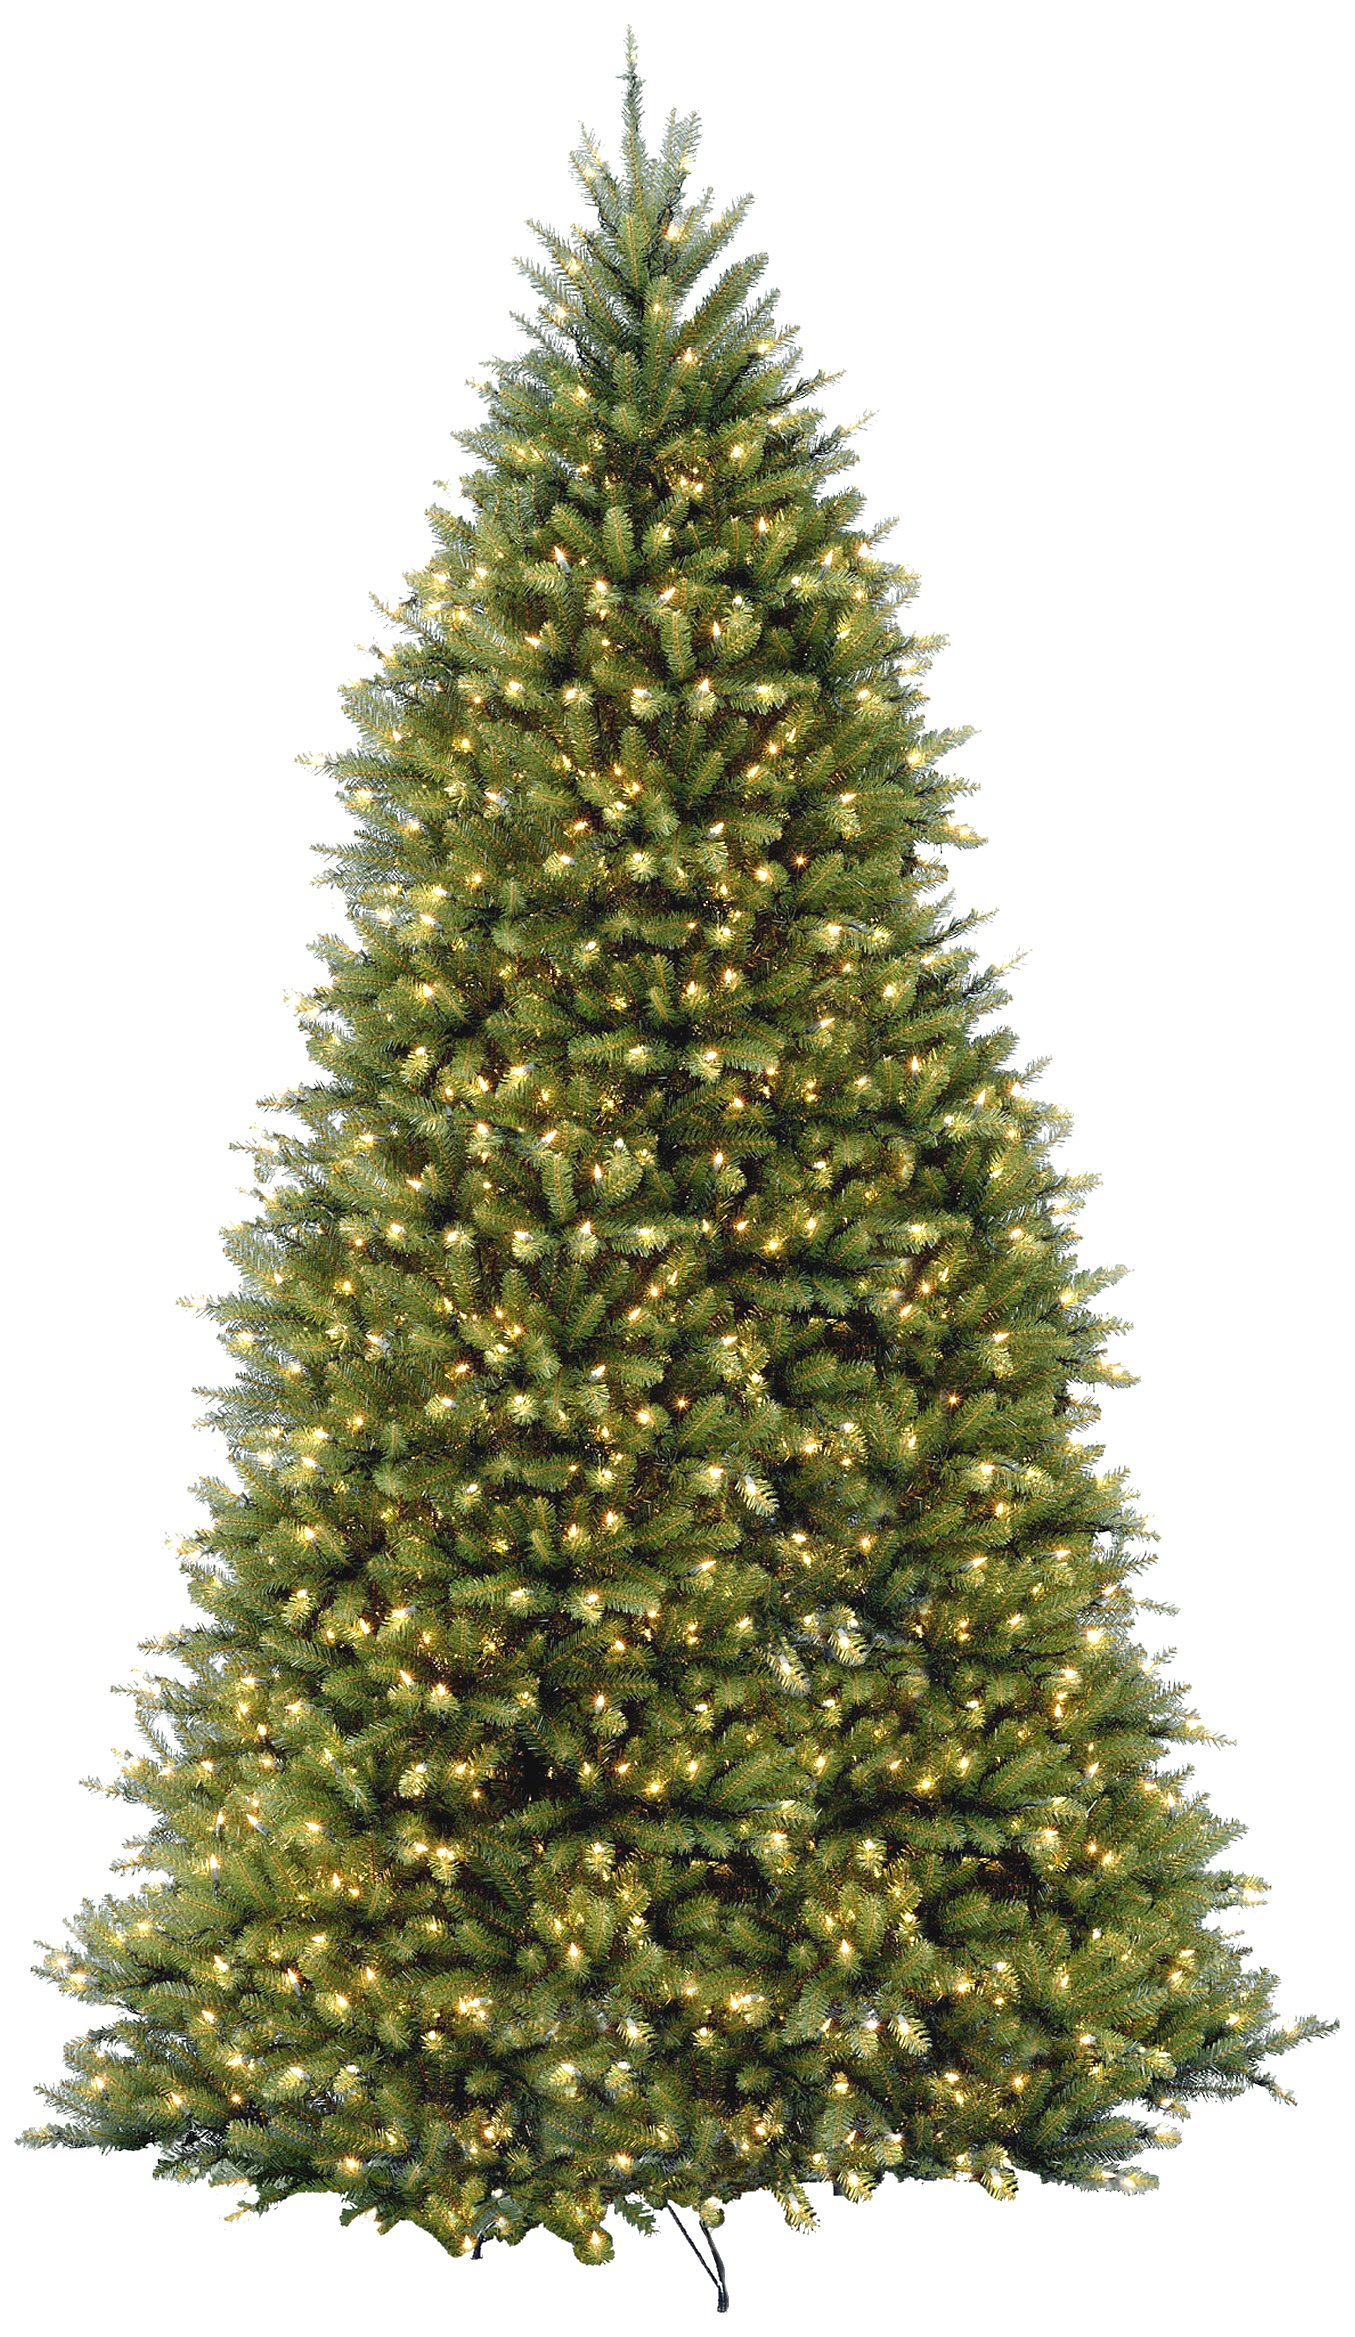 Artificial Christmas Tree 12 Ft: Amazon.com